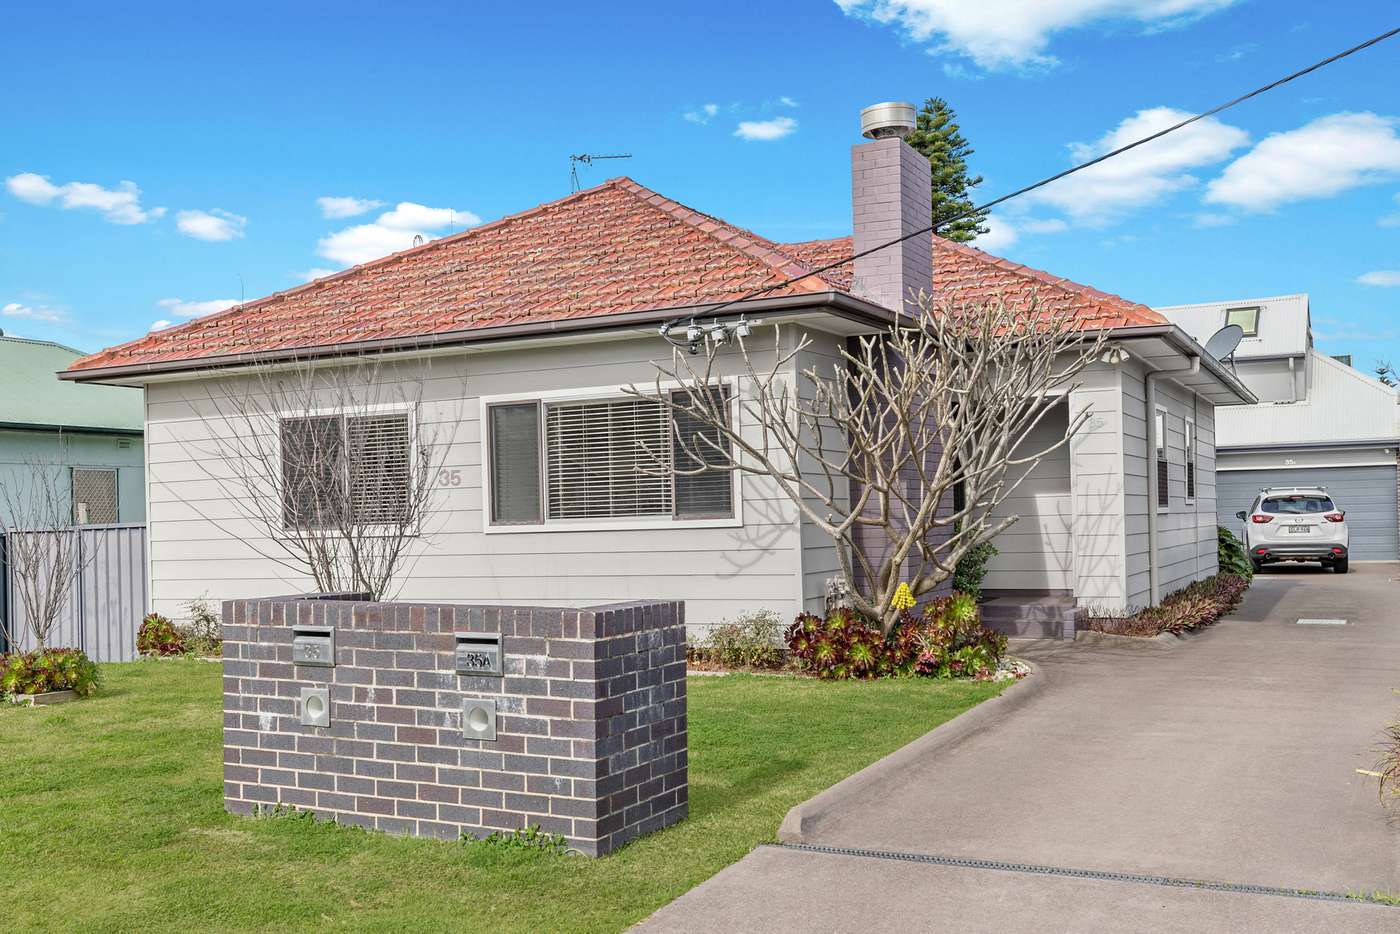 Main view of Homely house listing, 35 Fairfield Avenue, New Lambton NSW 2305